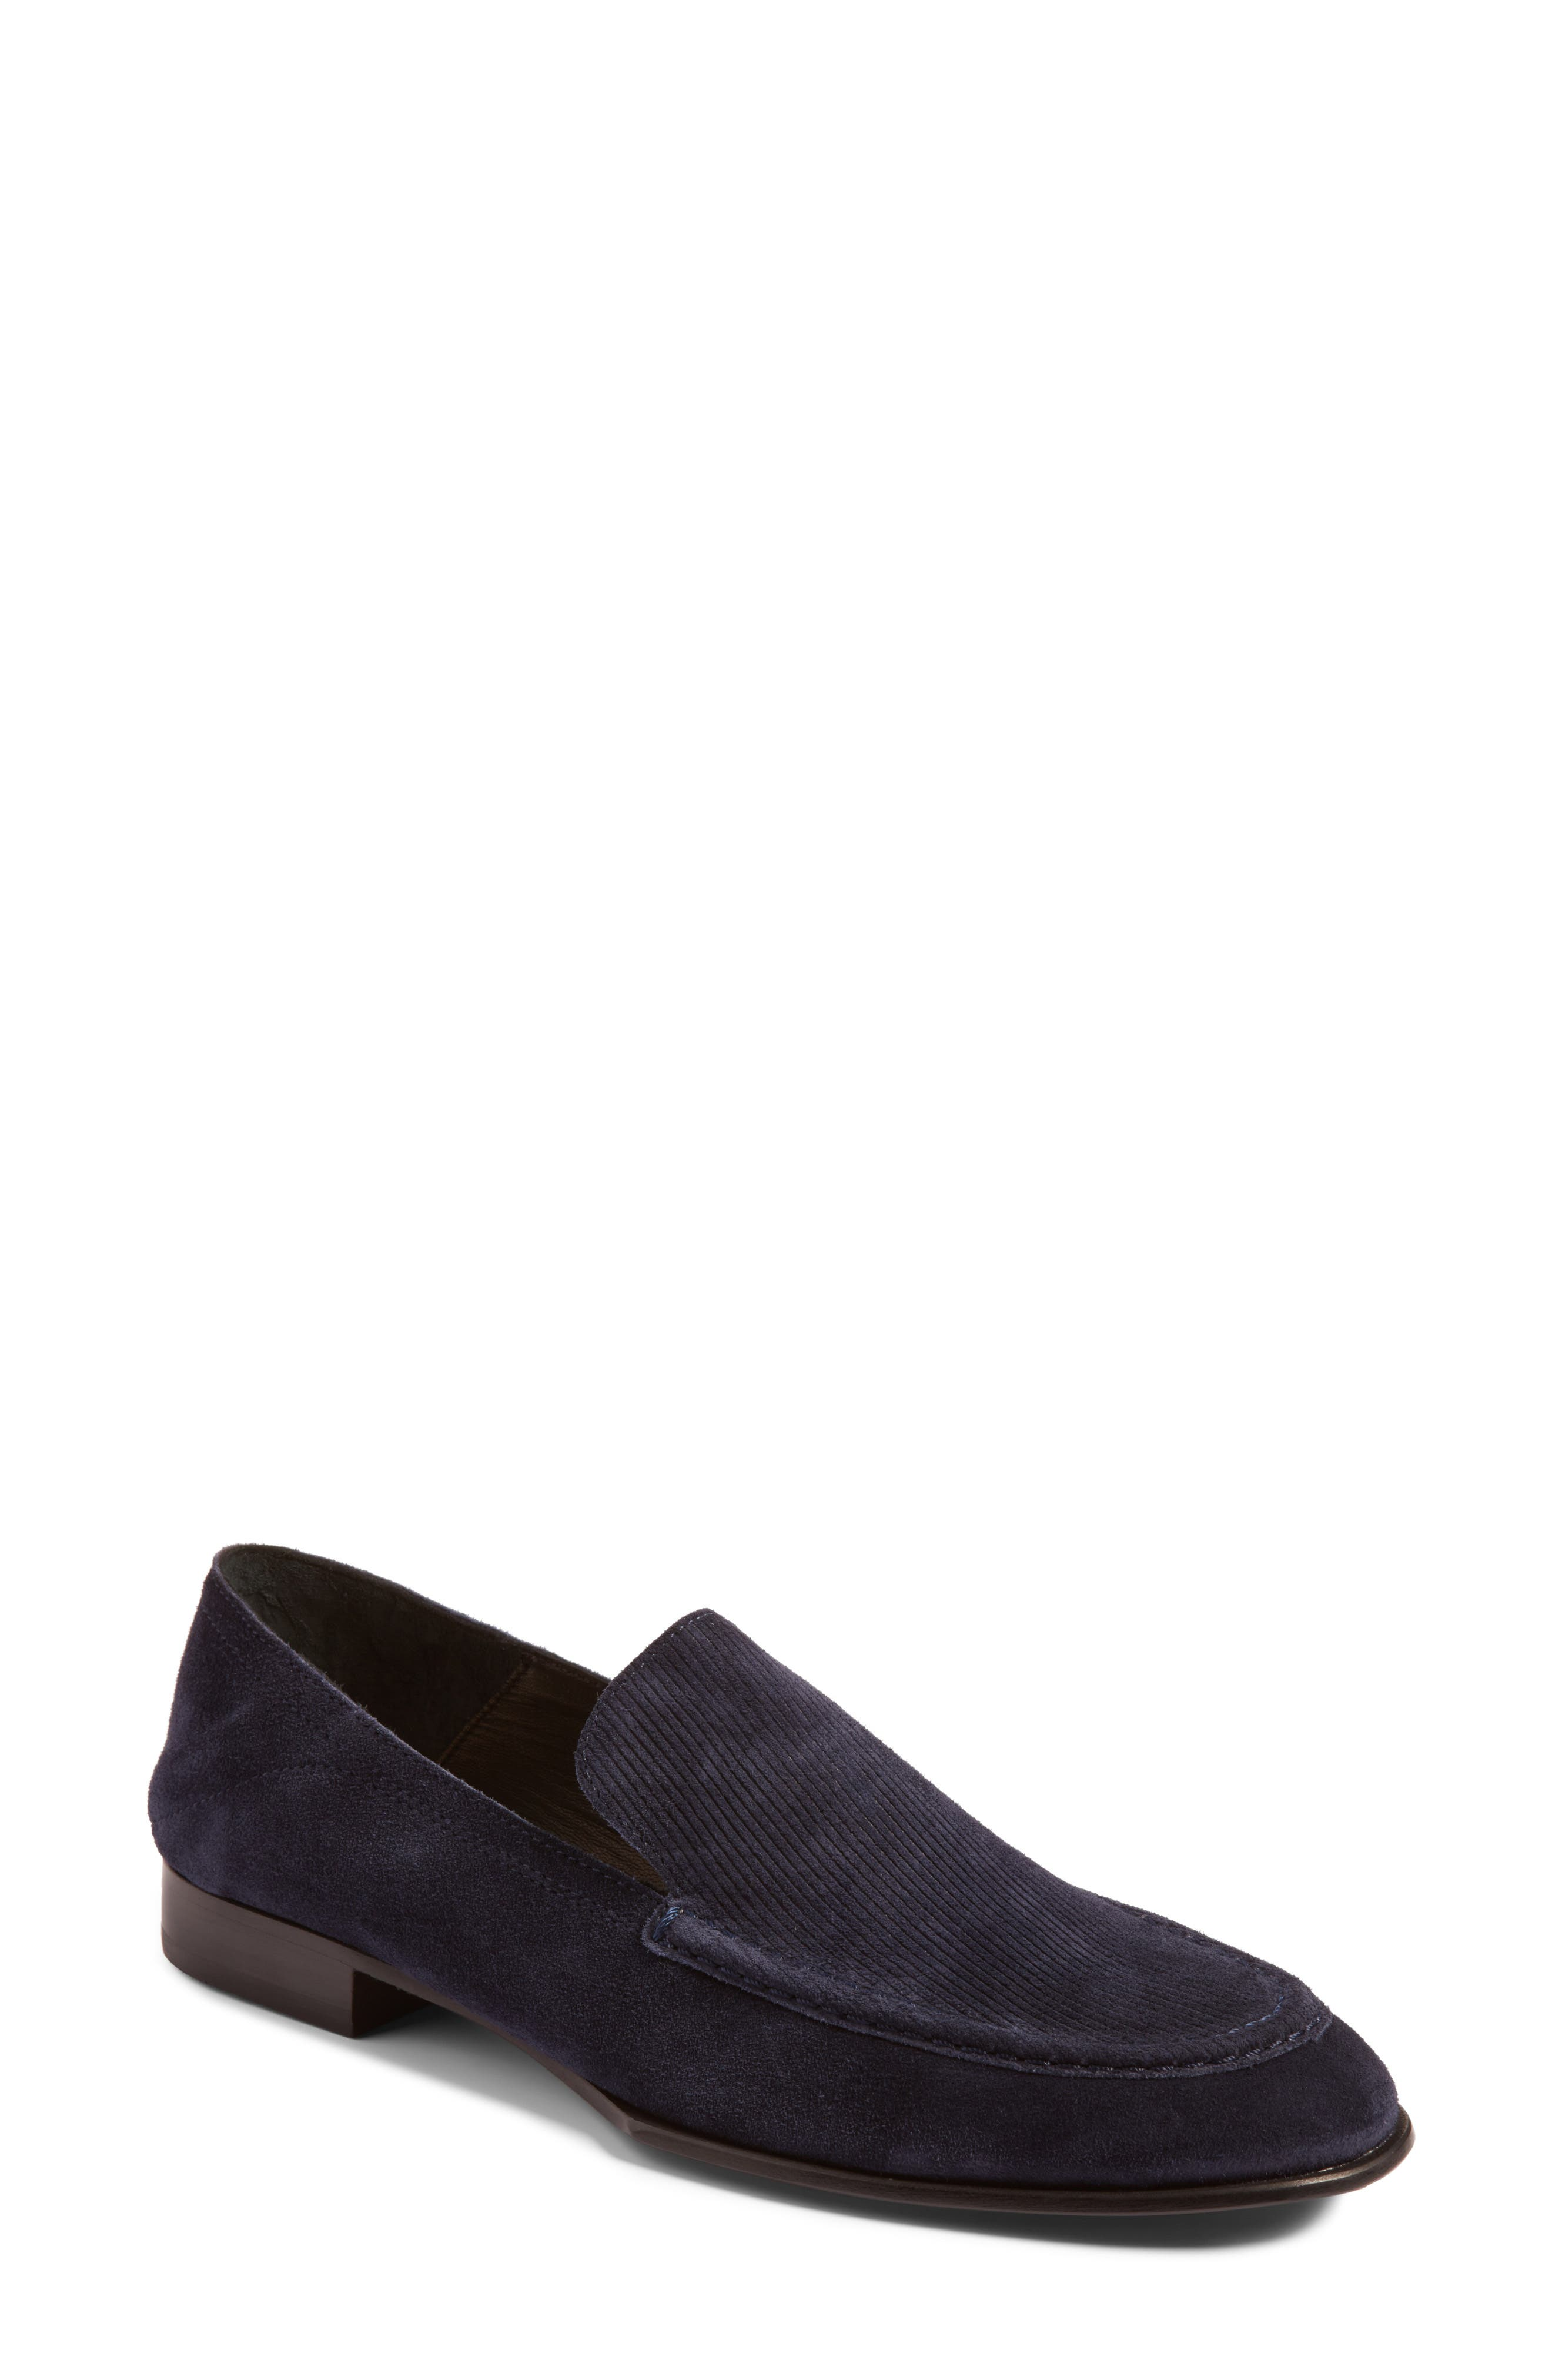 Alix Convertible Loafer,                             Main thumbnail 1, color,                             Navy Suede